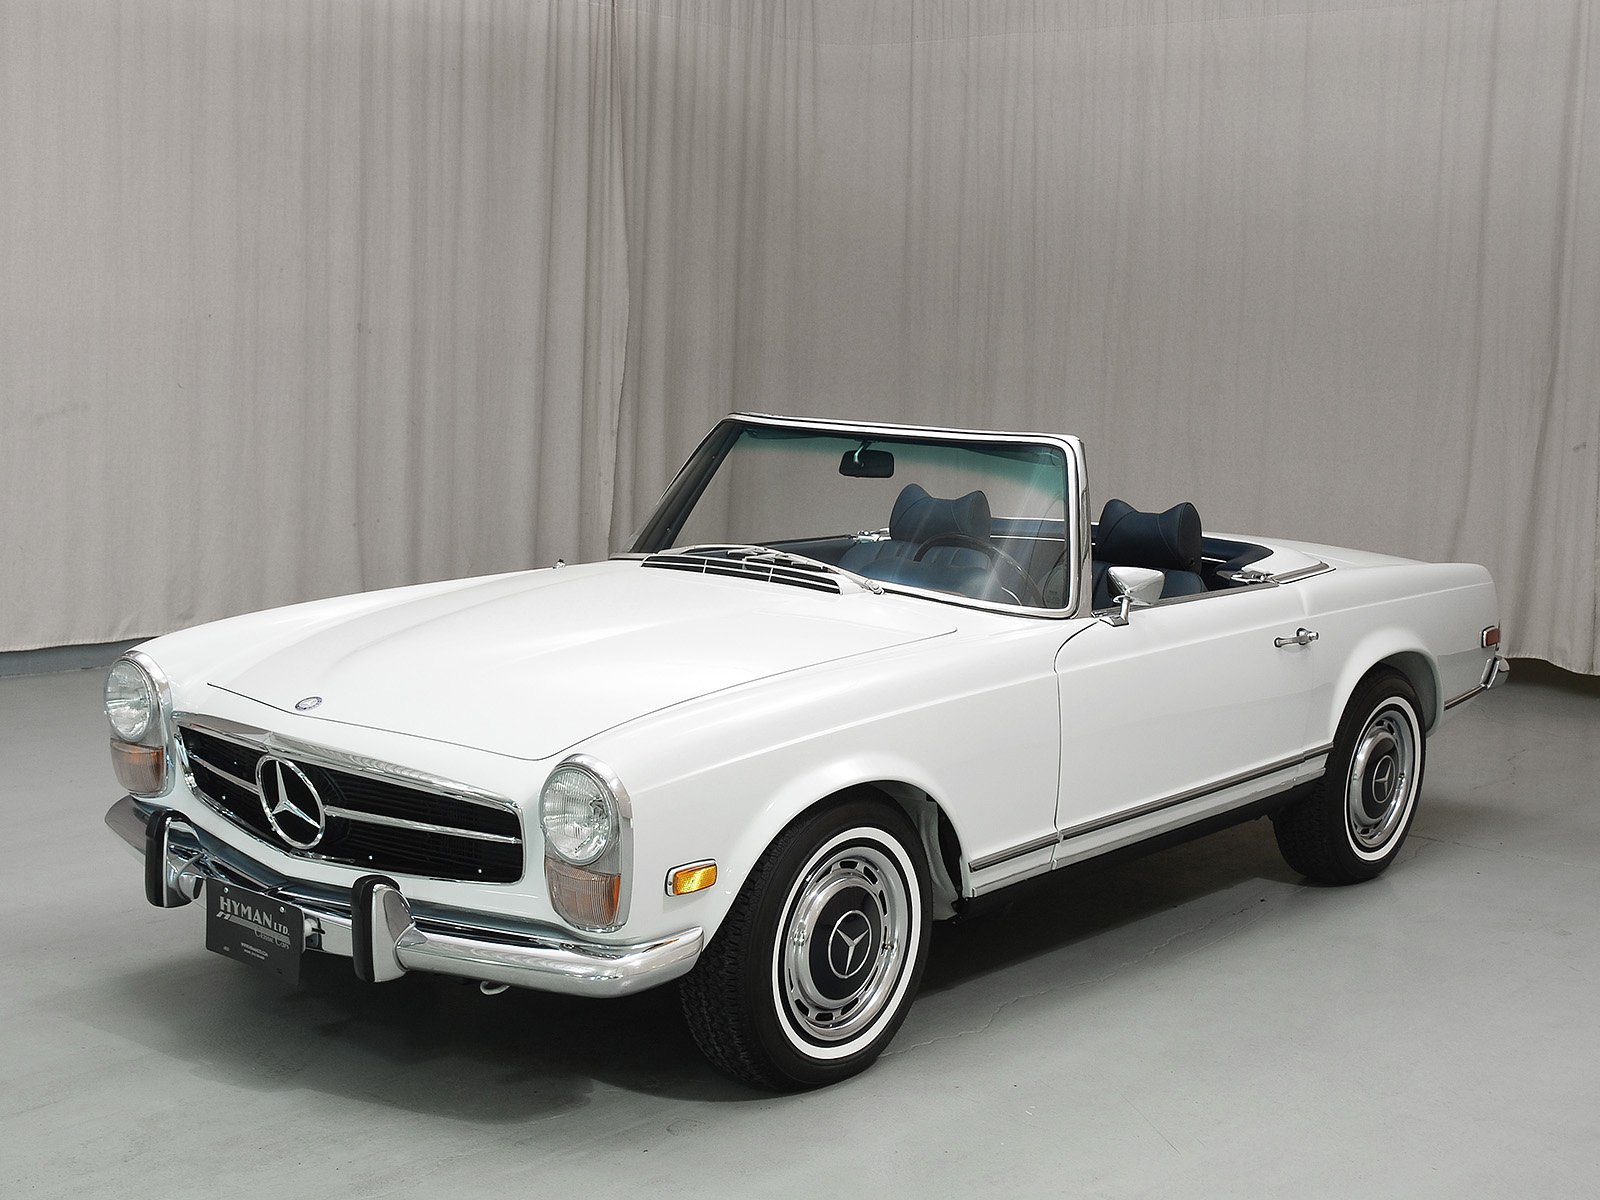 1970 Mercedes-Benz 280SL Convertible | Hyman Ltd.